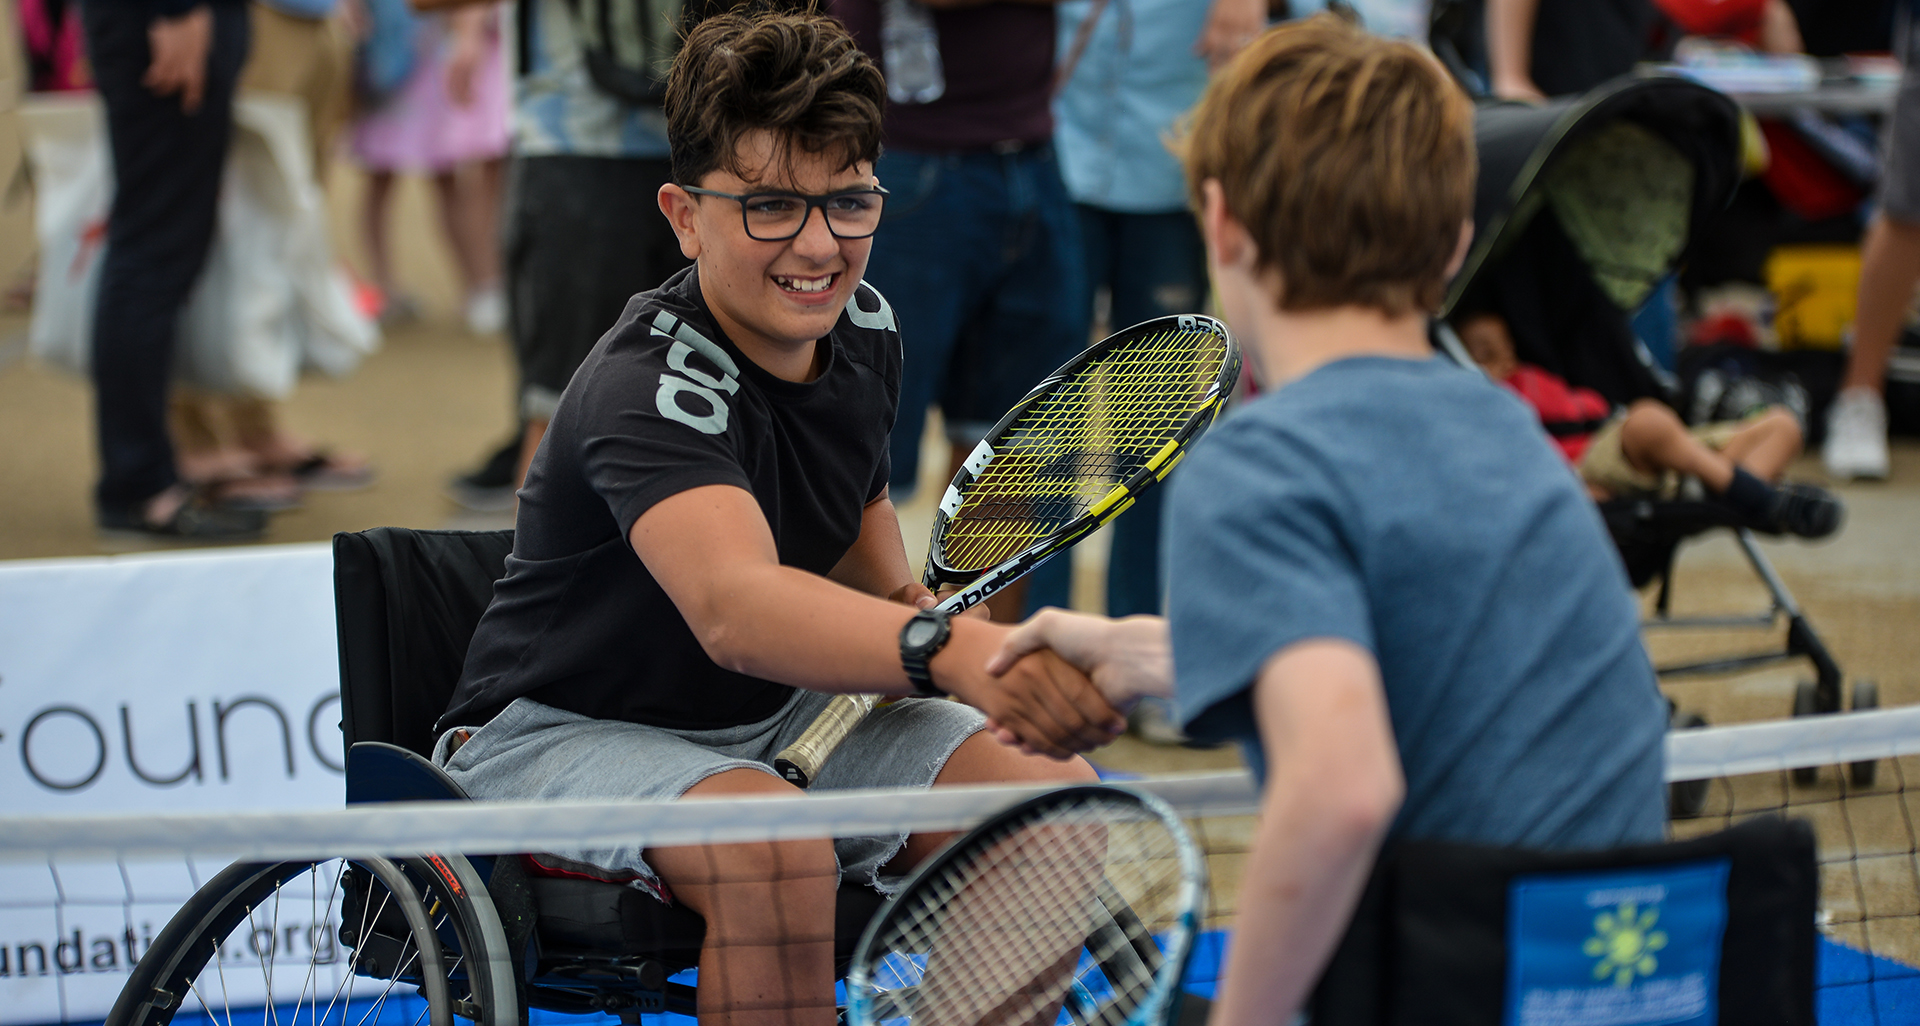 Two boys shaking hands after playing wheelchair Tennis. Partners